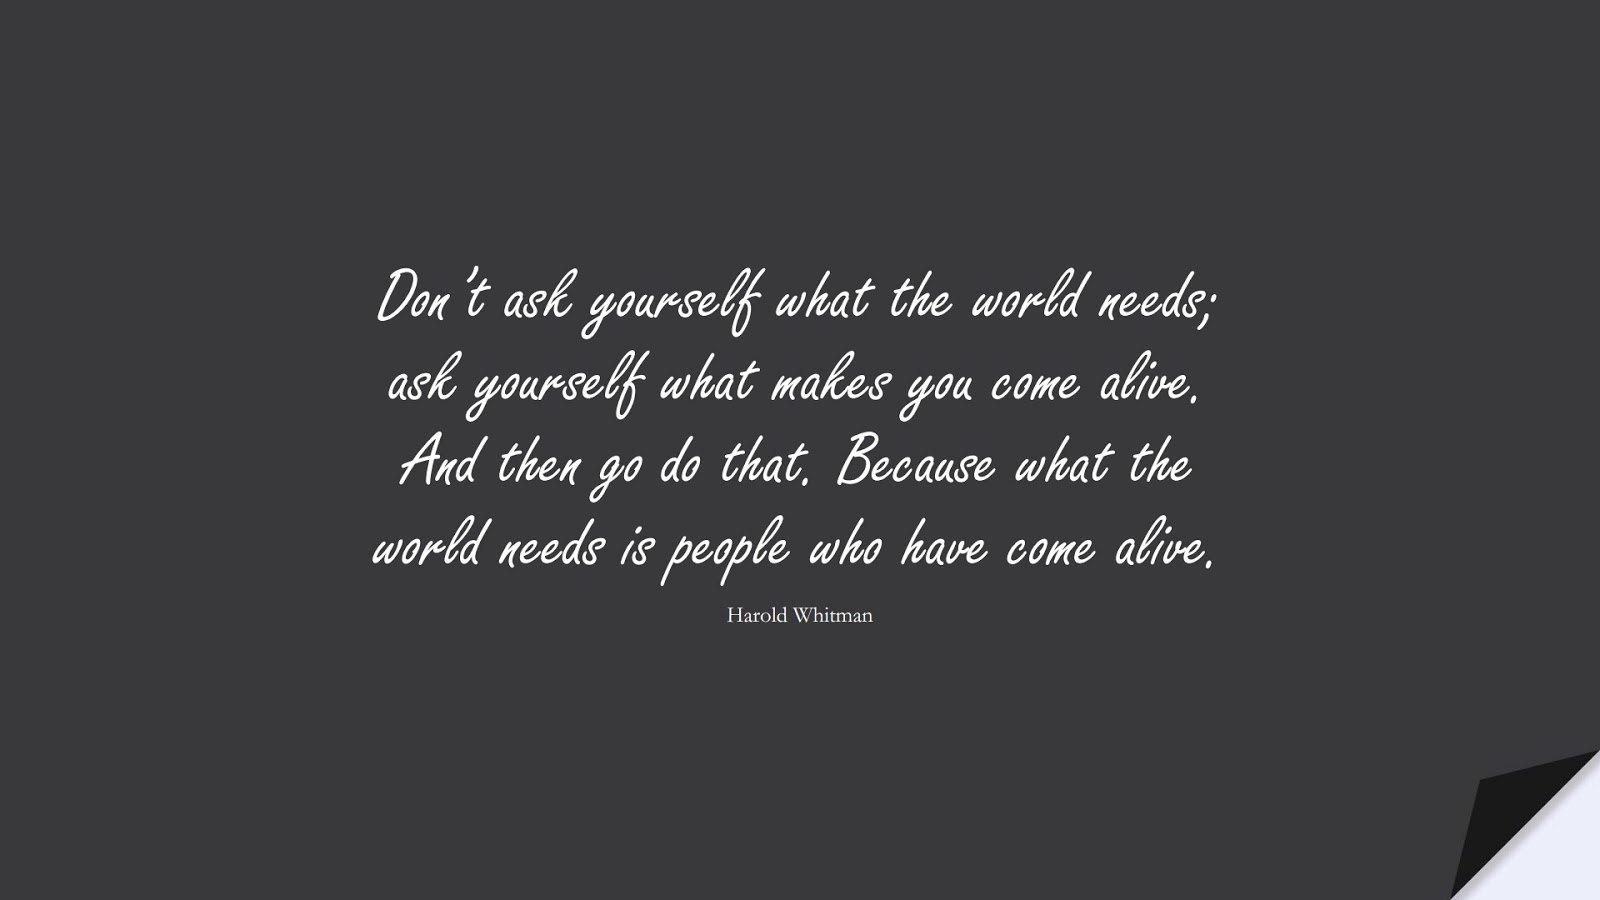 Don't ask yourself what the world needs; ask yourself what makes you come alive. And then go do that. Because what the world needs is people who have come alive. (Harold Whitman);  #LifeQuotes